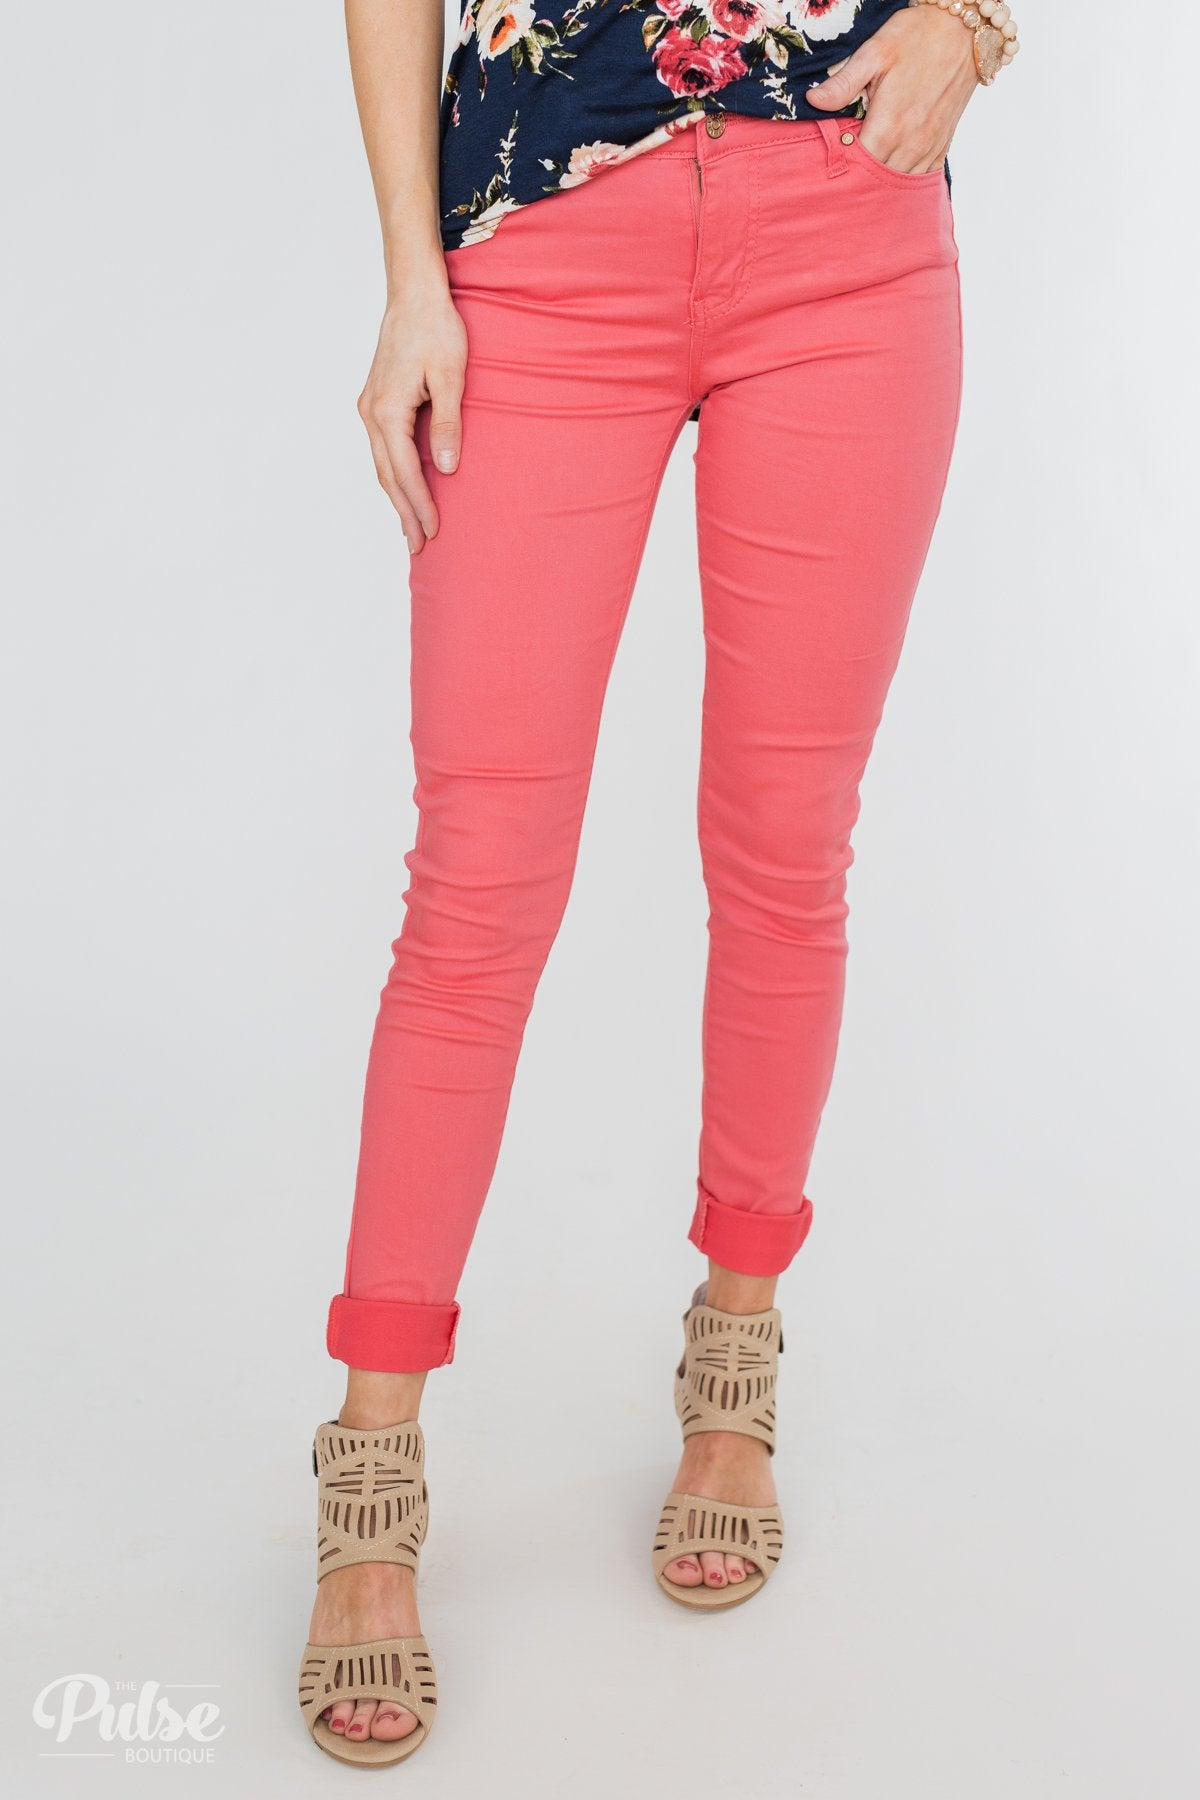 2d1e64f90bb Celebrity Pink Skinny Jeans- Lipstick – The Pulse Boutique